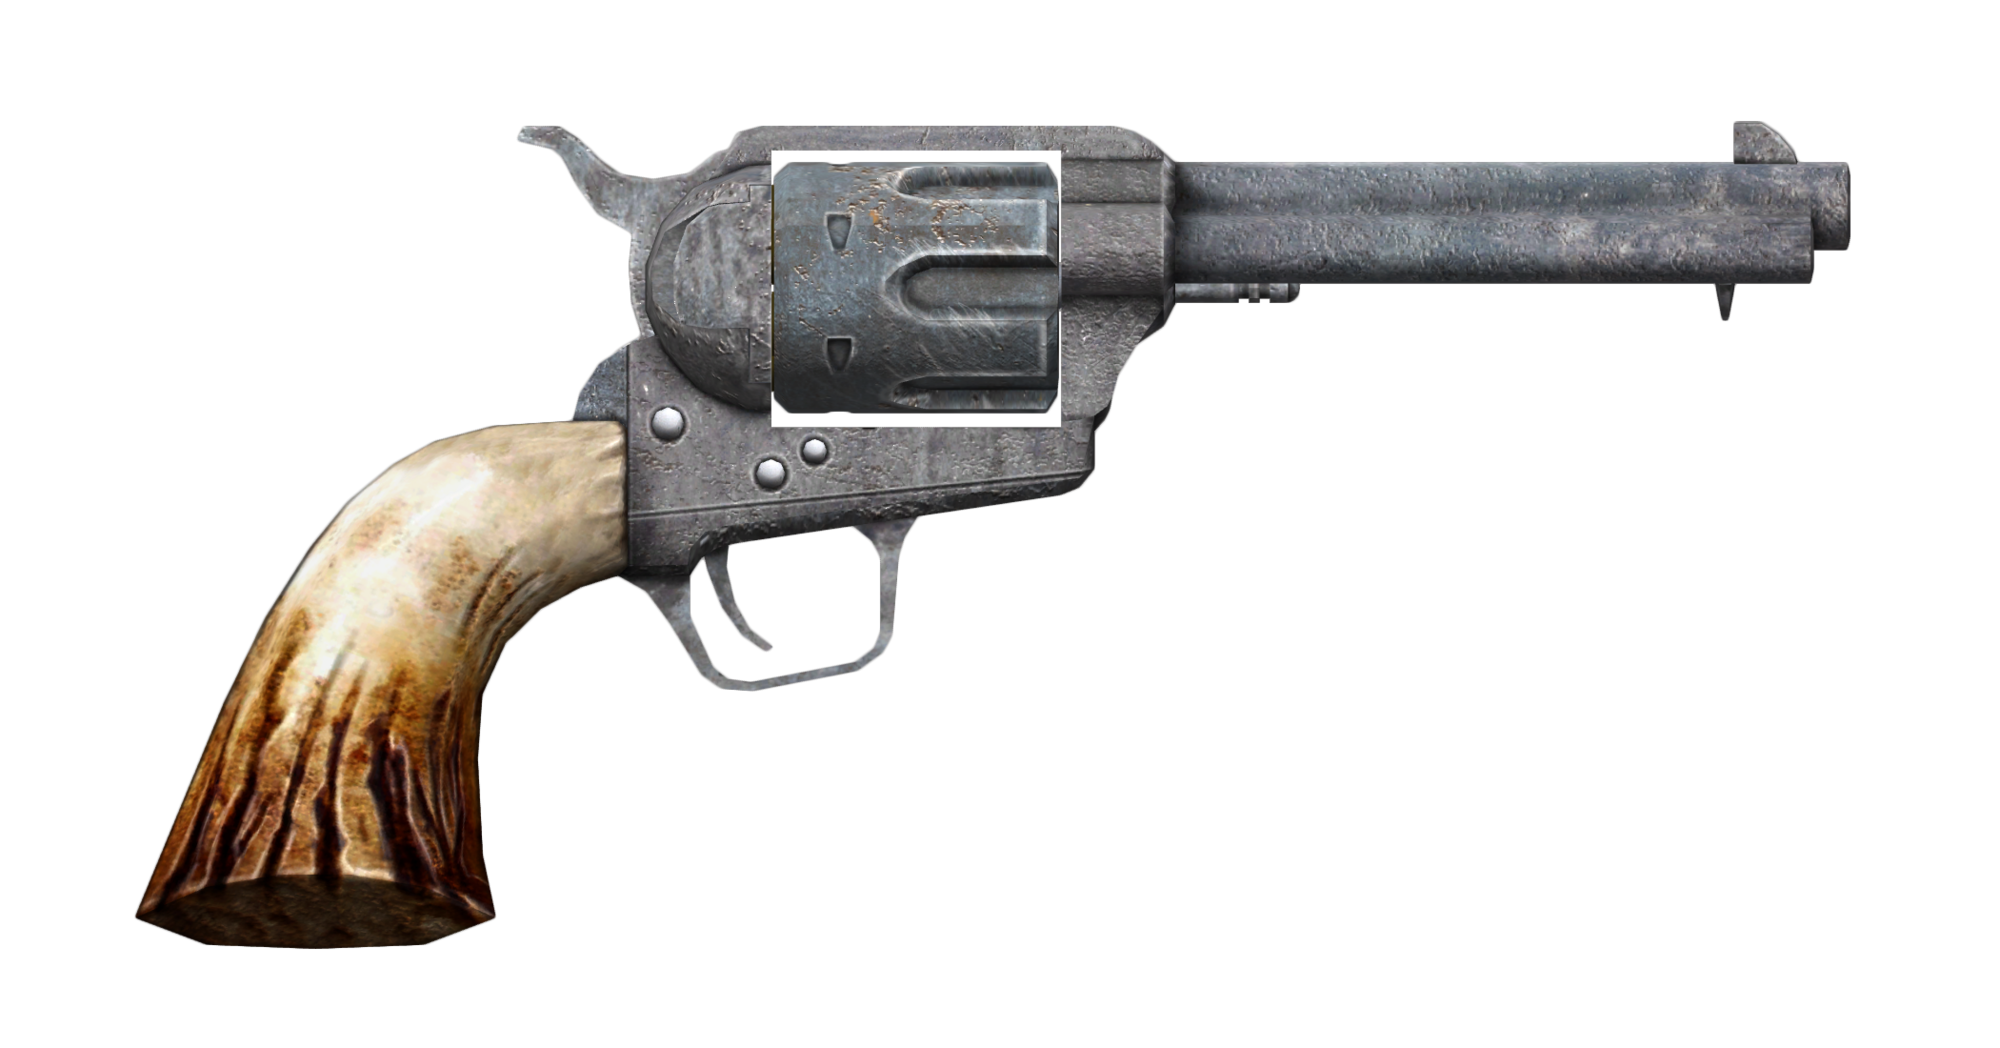 Fallout: New Vegas weapons | Fallout Wiki | FANDOM powered by Wikia